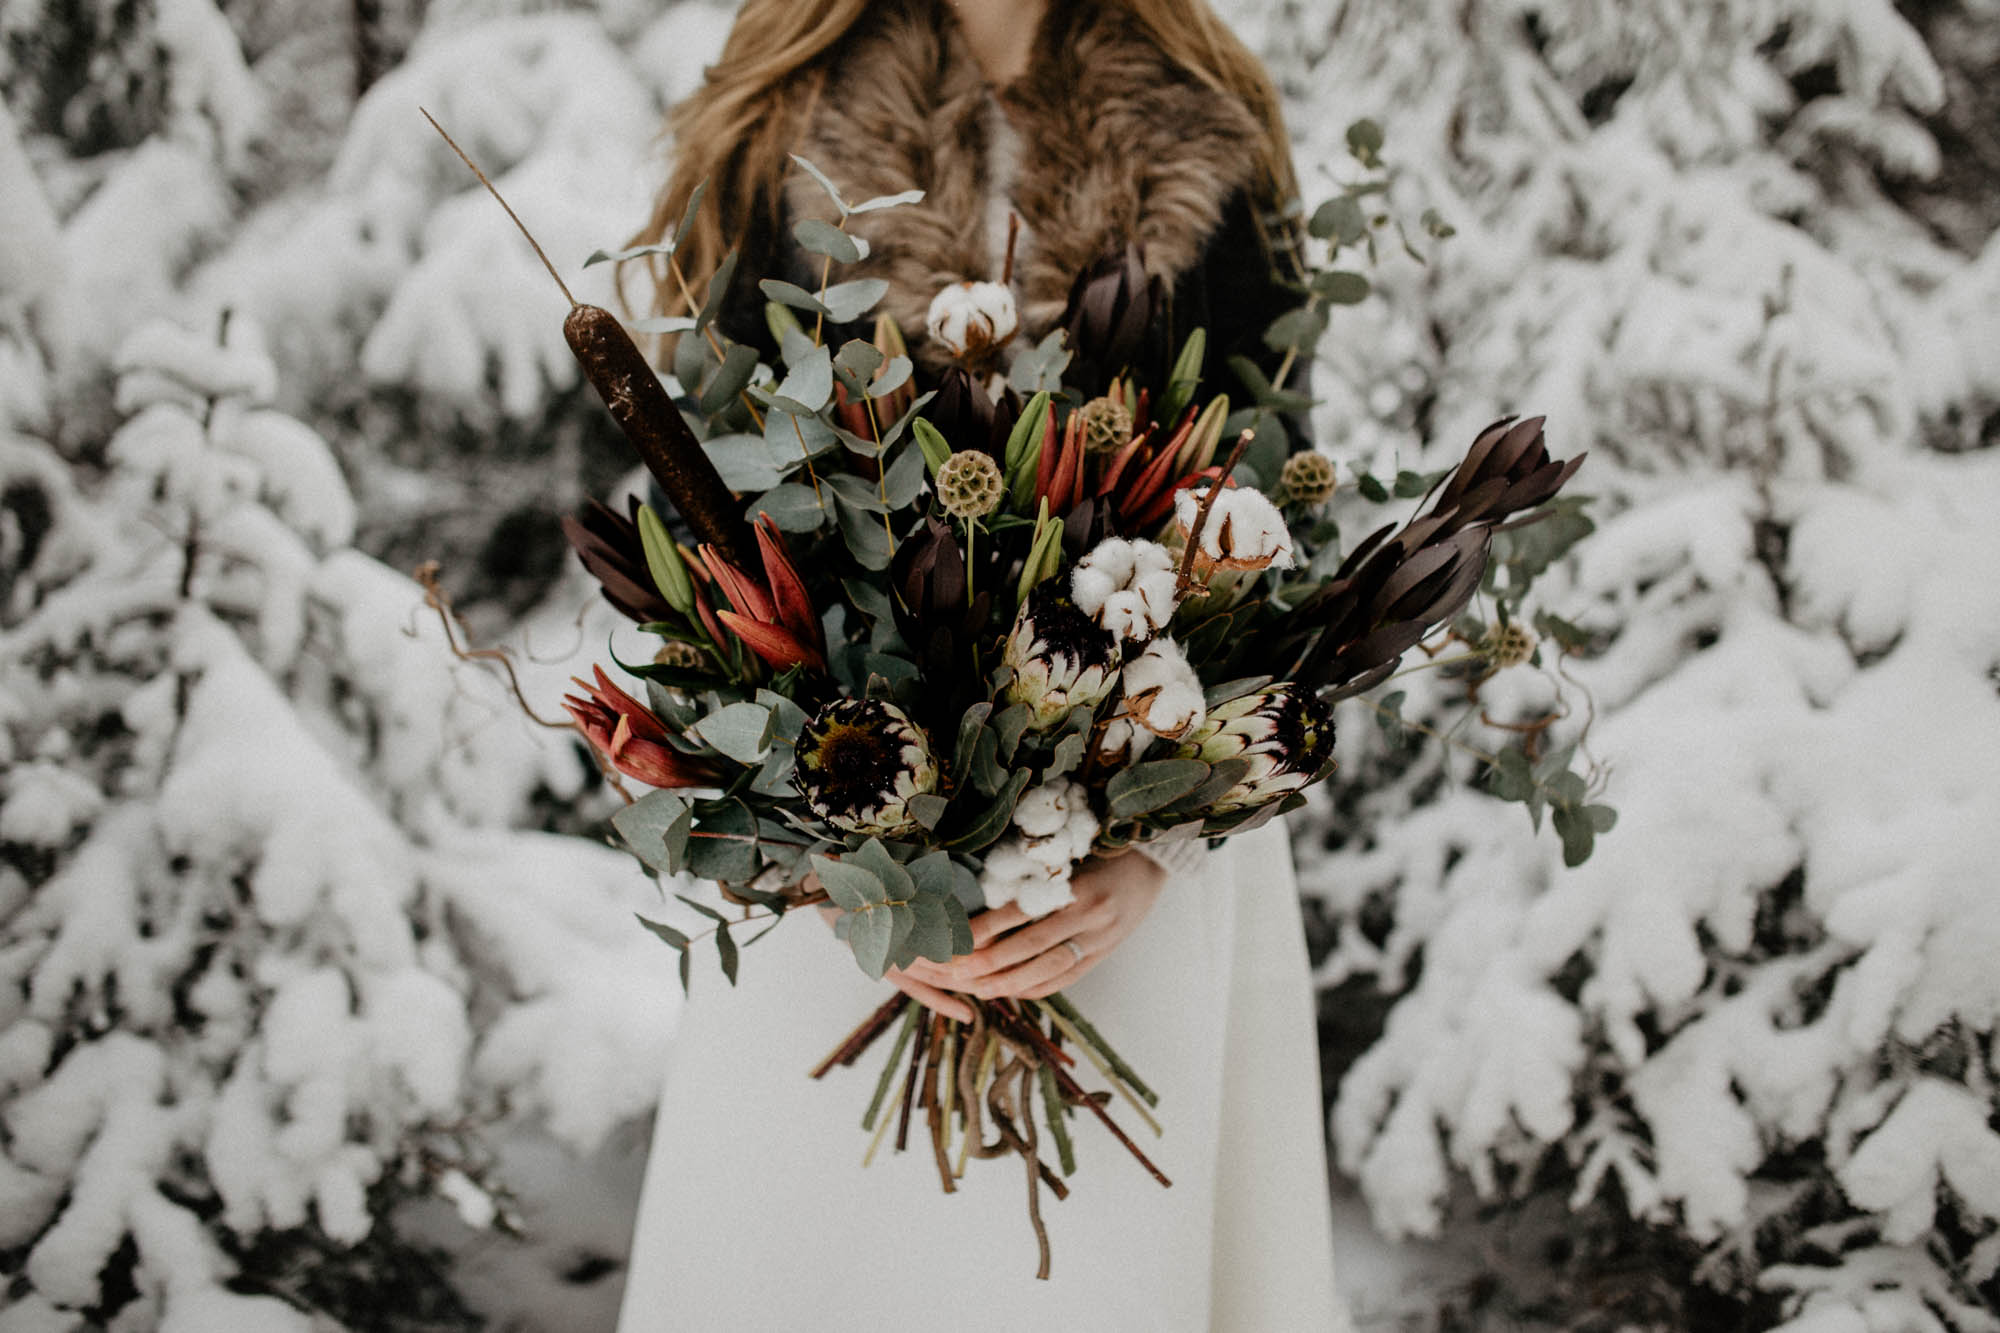 ashley_schulman_photography-winter_wedding_tampere-35.jpg